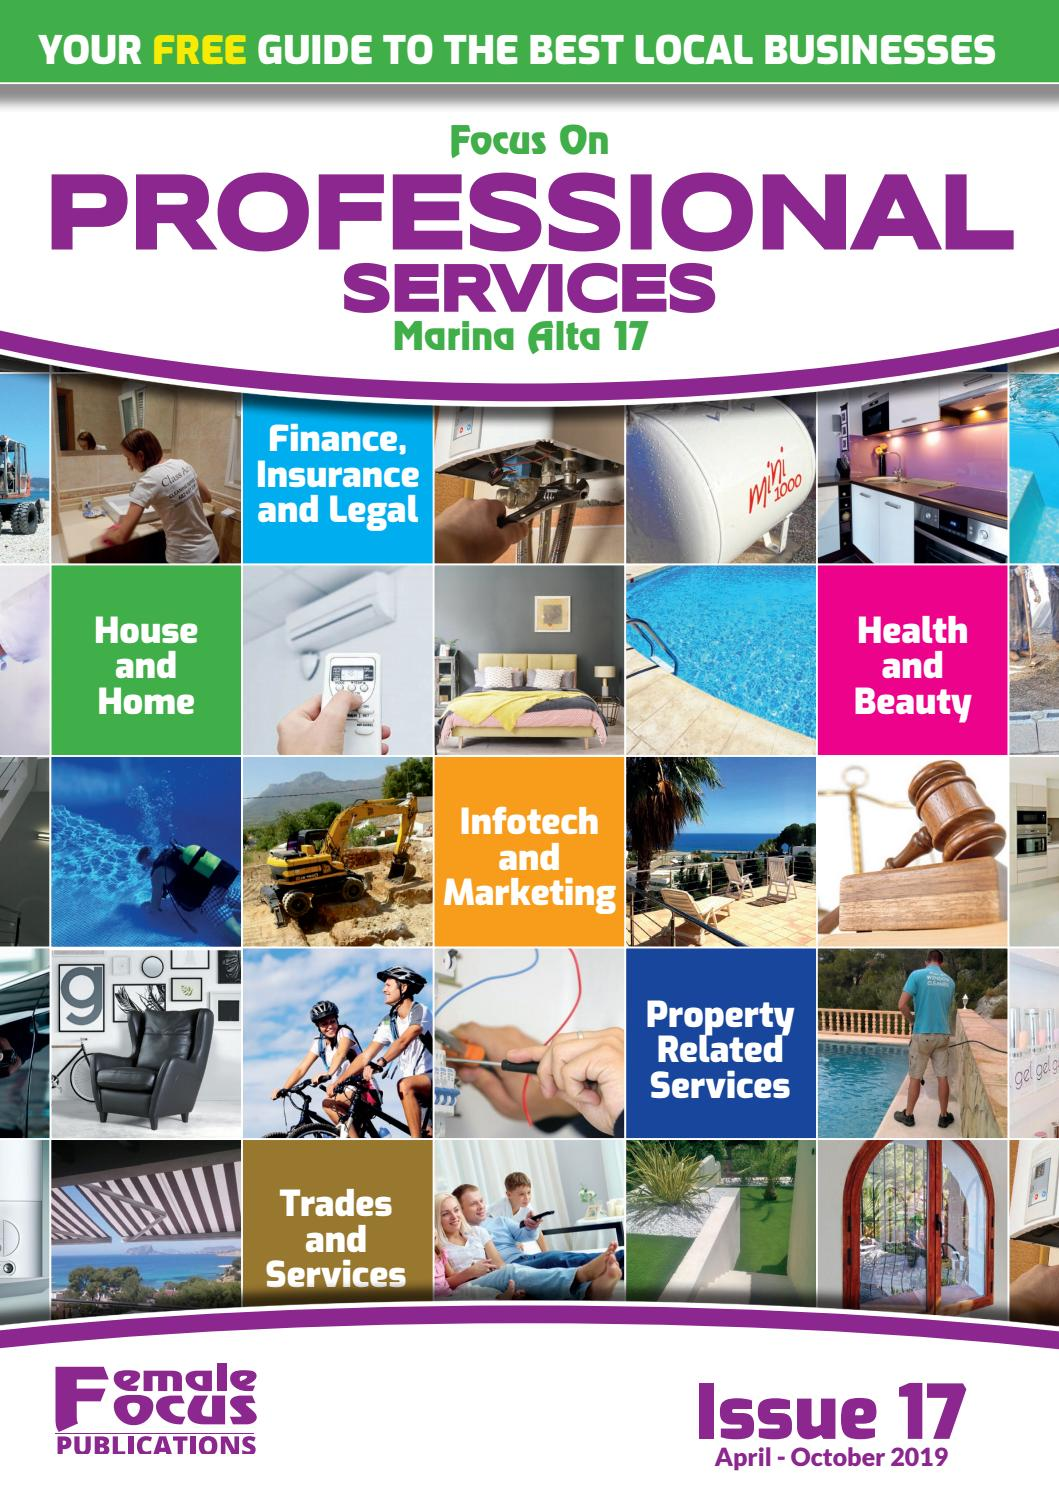 Focus on Professional Services Marina Alta - Issue 17 by Female